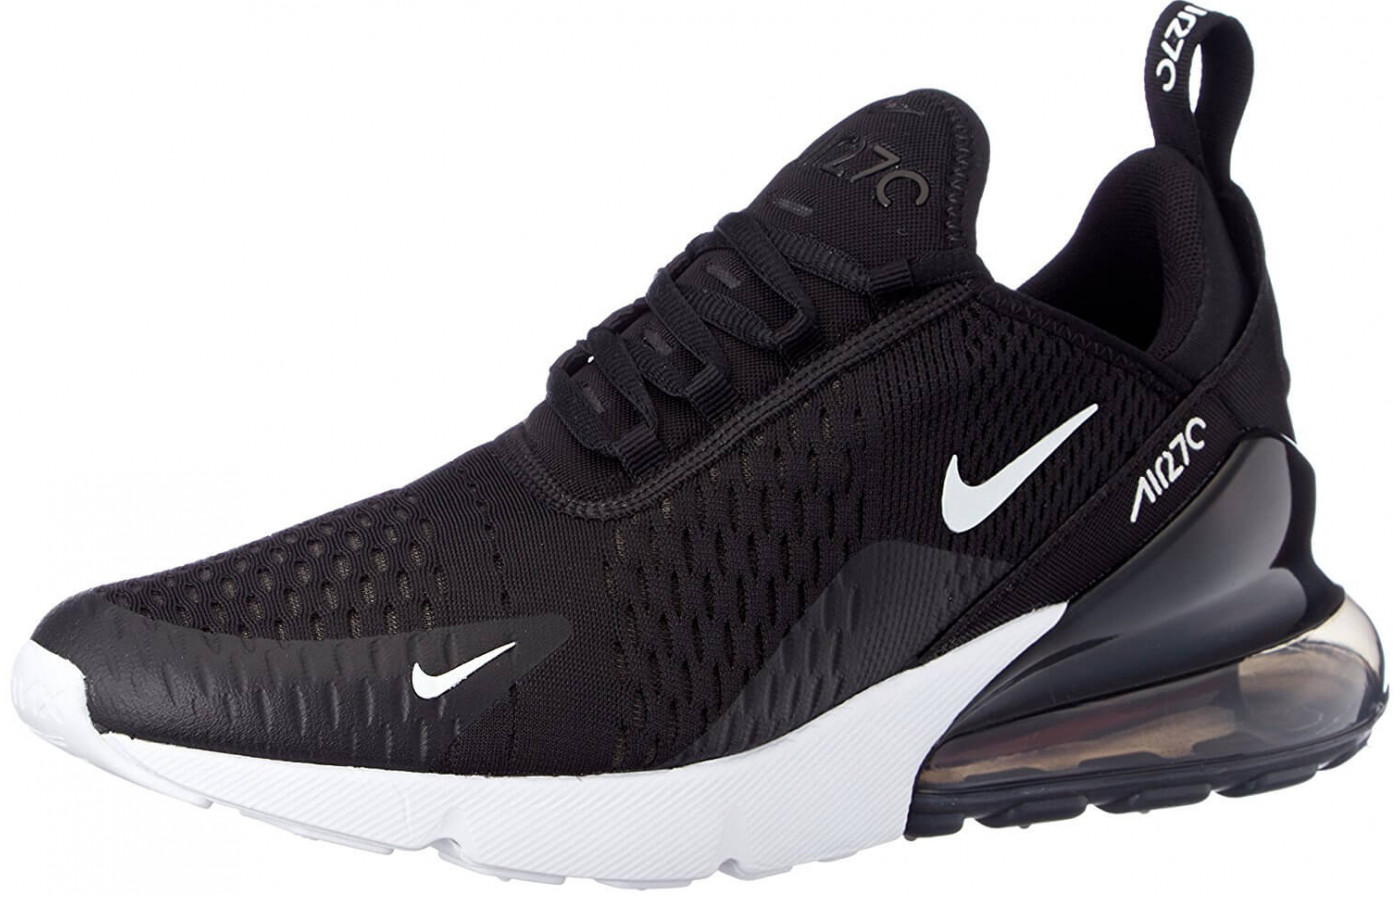 promo code 5864b 7d1d2 Nike Air Max 270. Mesh upper and 270 degrees of Air ...